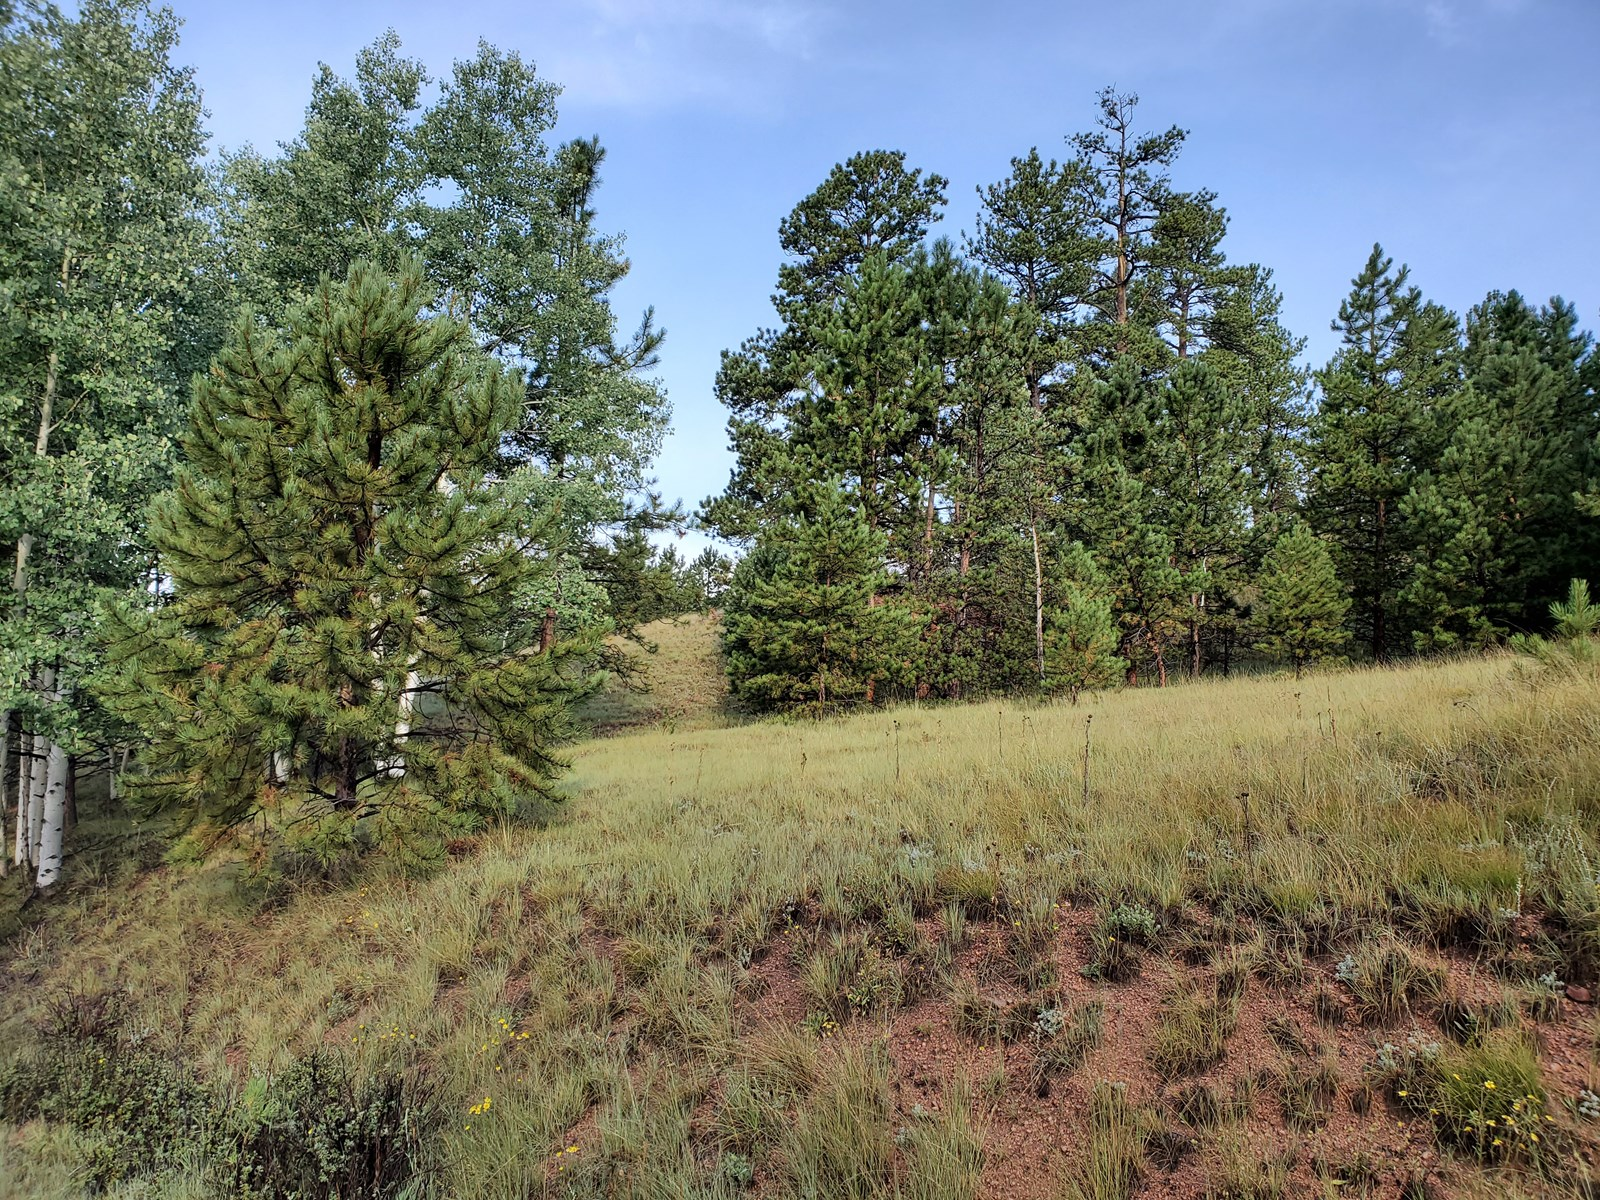 Vacant land Wooded Teller County CO National Forest Hiking